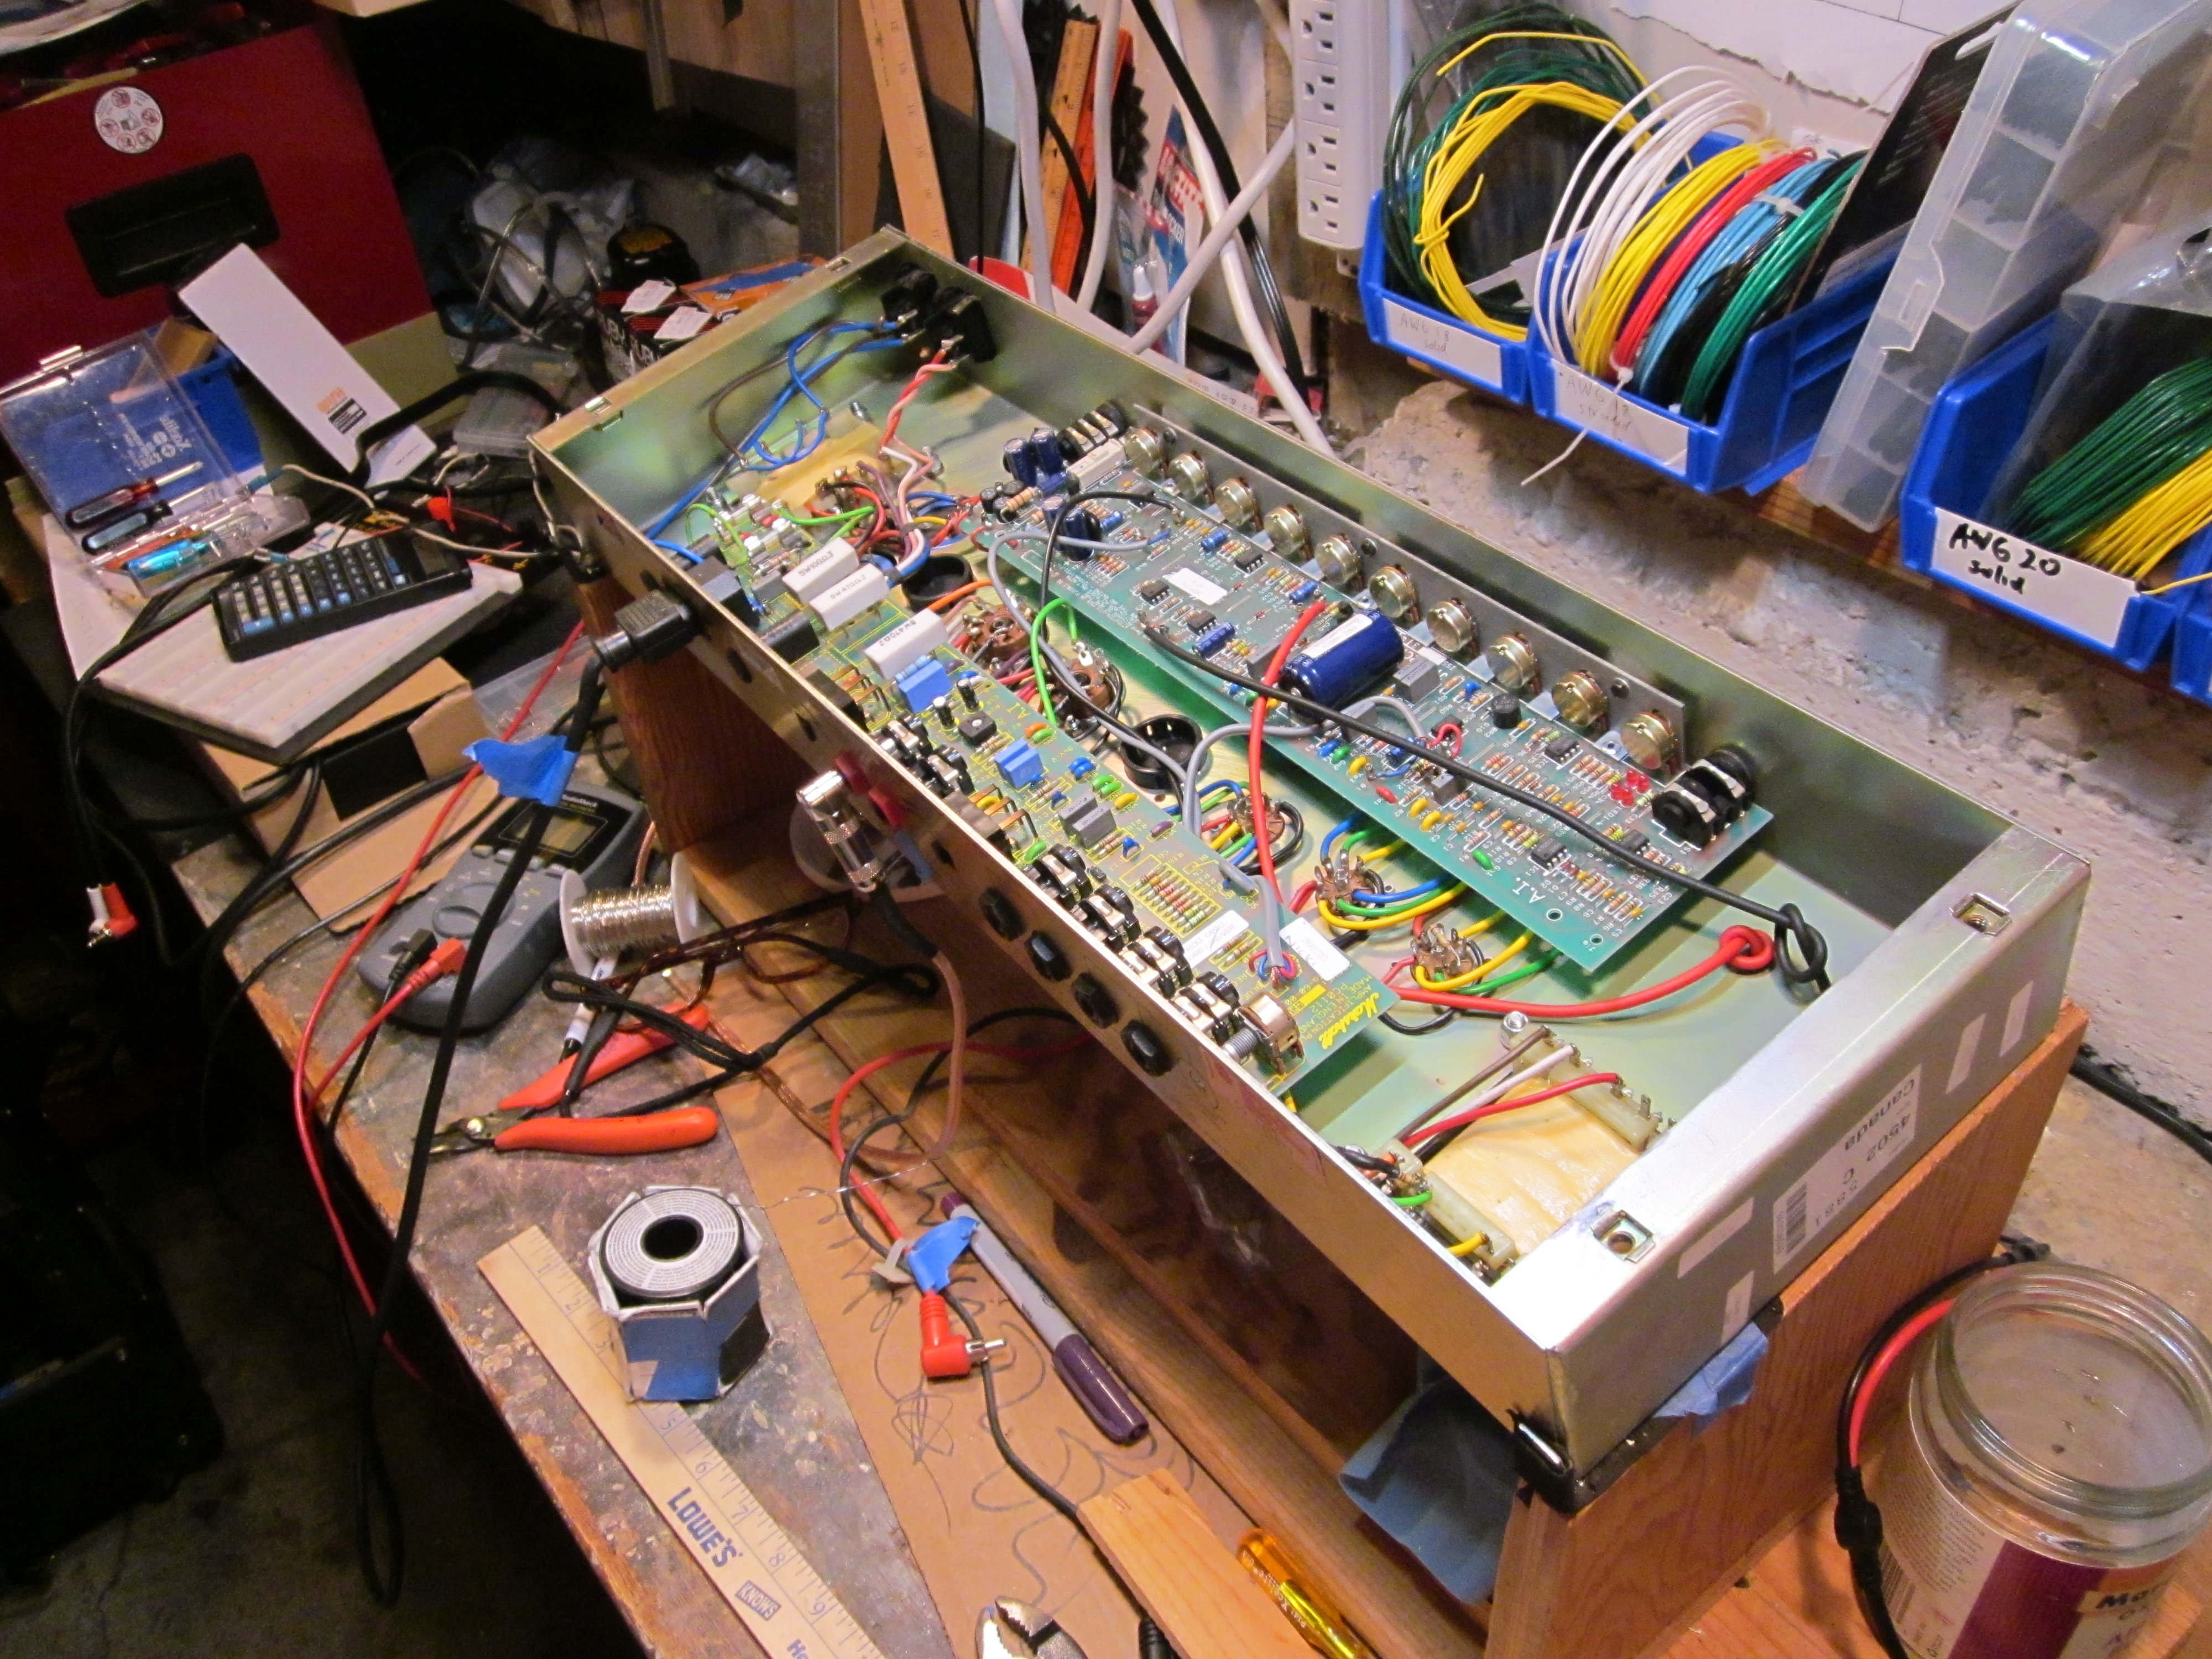 I Just Worked On A Sunnyside Amps Gibson Guitar Board Updating The Electronics With Pcb Do Clip Img 5220 5219